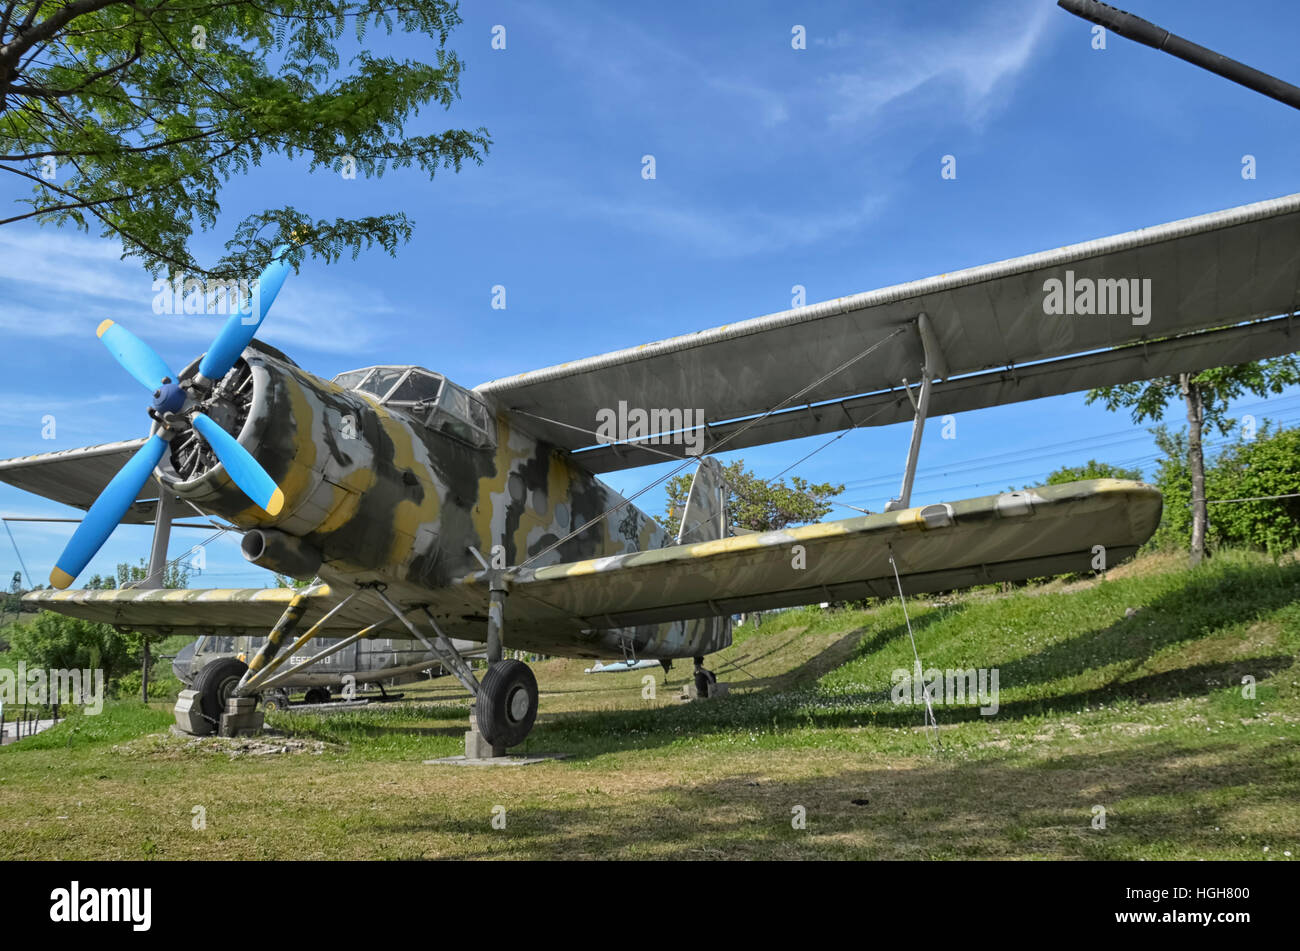 The retired Antonov An-2 military aircraft camouflaged - Stock Image